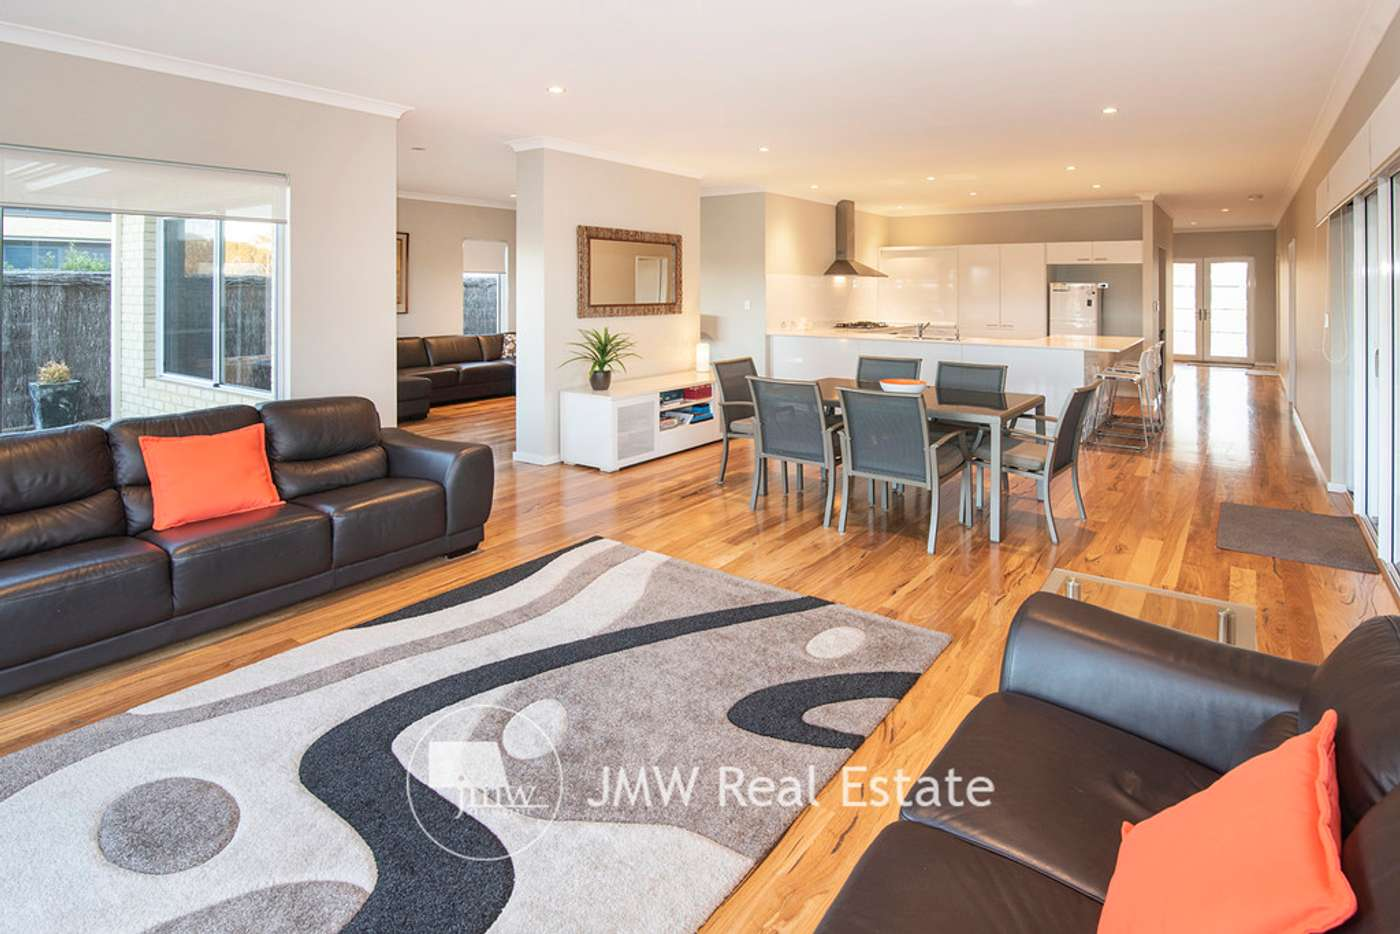 Sixth view of Homely house listing, 10 Birkdale Green, Dunsborough WA 6281